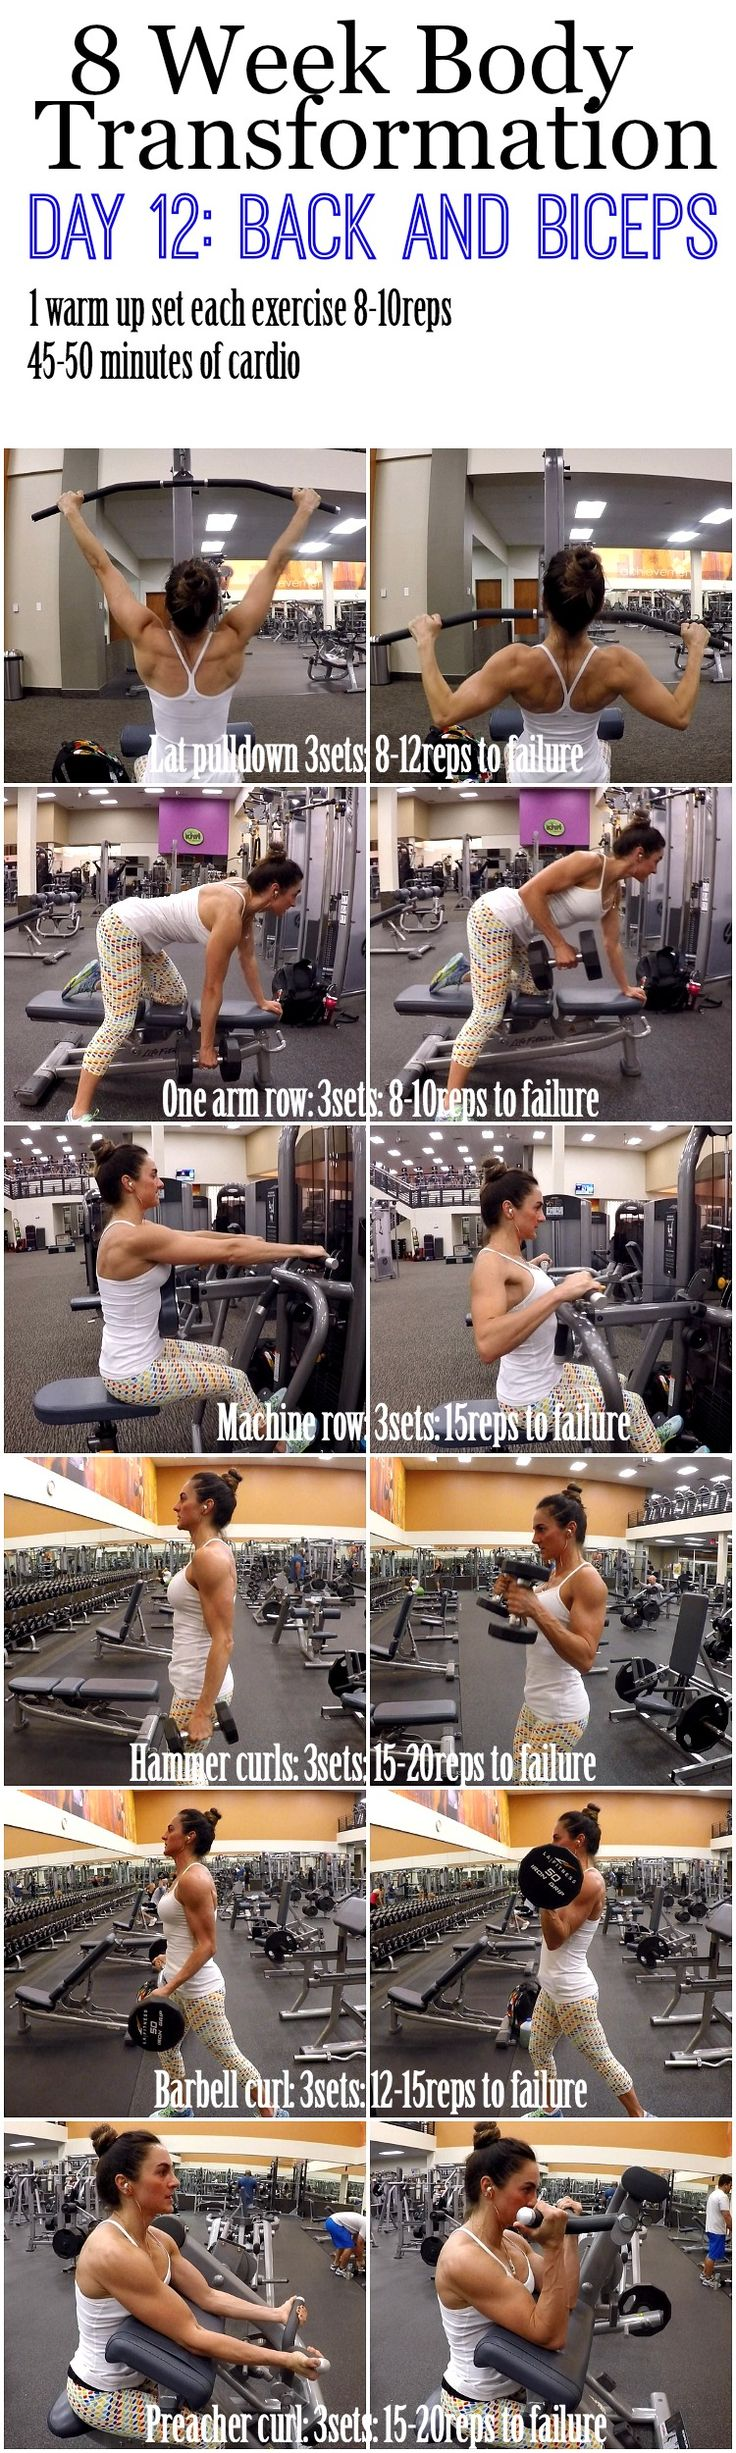 Build bigger biceps with this one trick Here we go Day 12 Back and Biceps, we are almost done with week 2 and I feel like it is flying by. I hope your legs are sore today, but they will be even more sore tomorrow (thumbs up!) Ok, moving on.. Today we are hammering out 6 exercises, 3 for our back and …